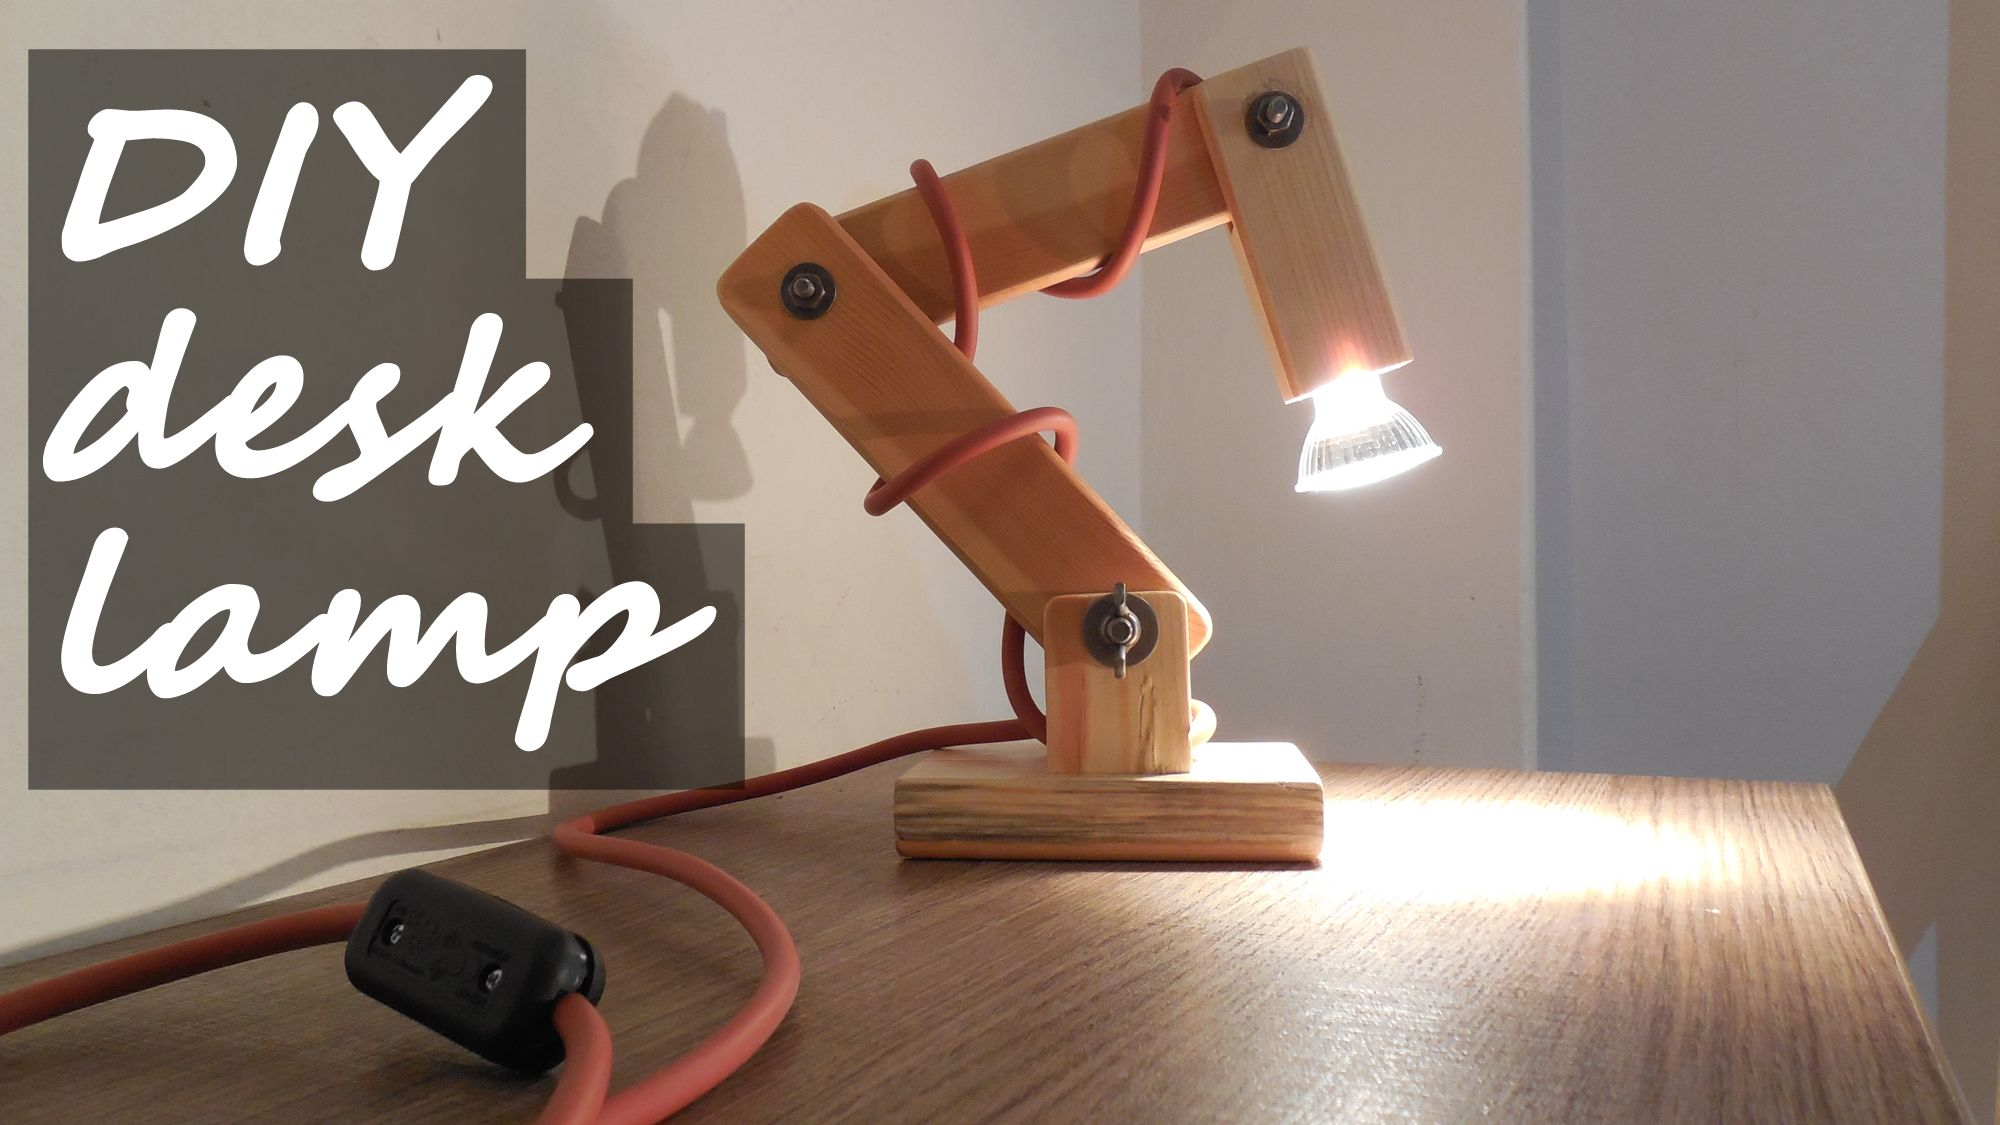 Diy Articulated Wooden Desk Lamp With Gu10 Bulb Diy Diylamp Desklamp Diydesklamp Lamp Woodenlamp Woodendesklamp Articu Wooden Desk Lamp Desk Lamp Lamp